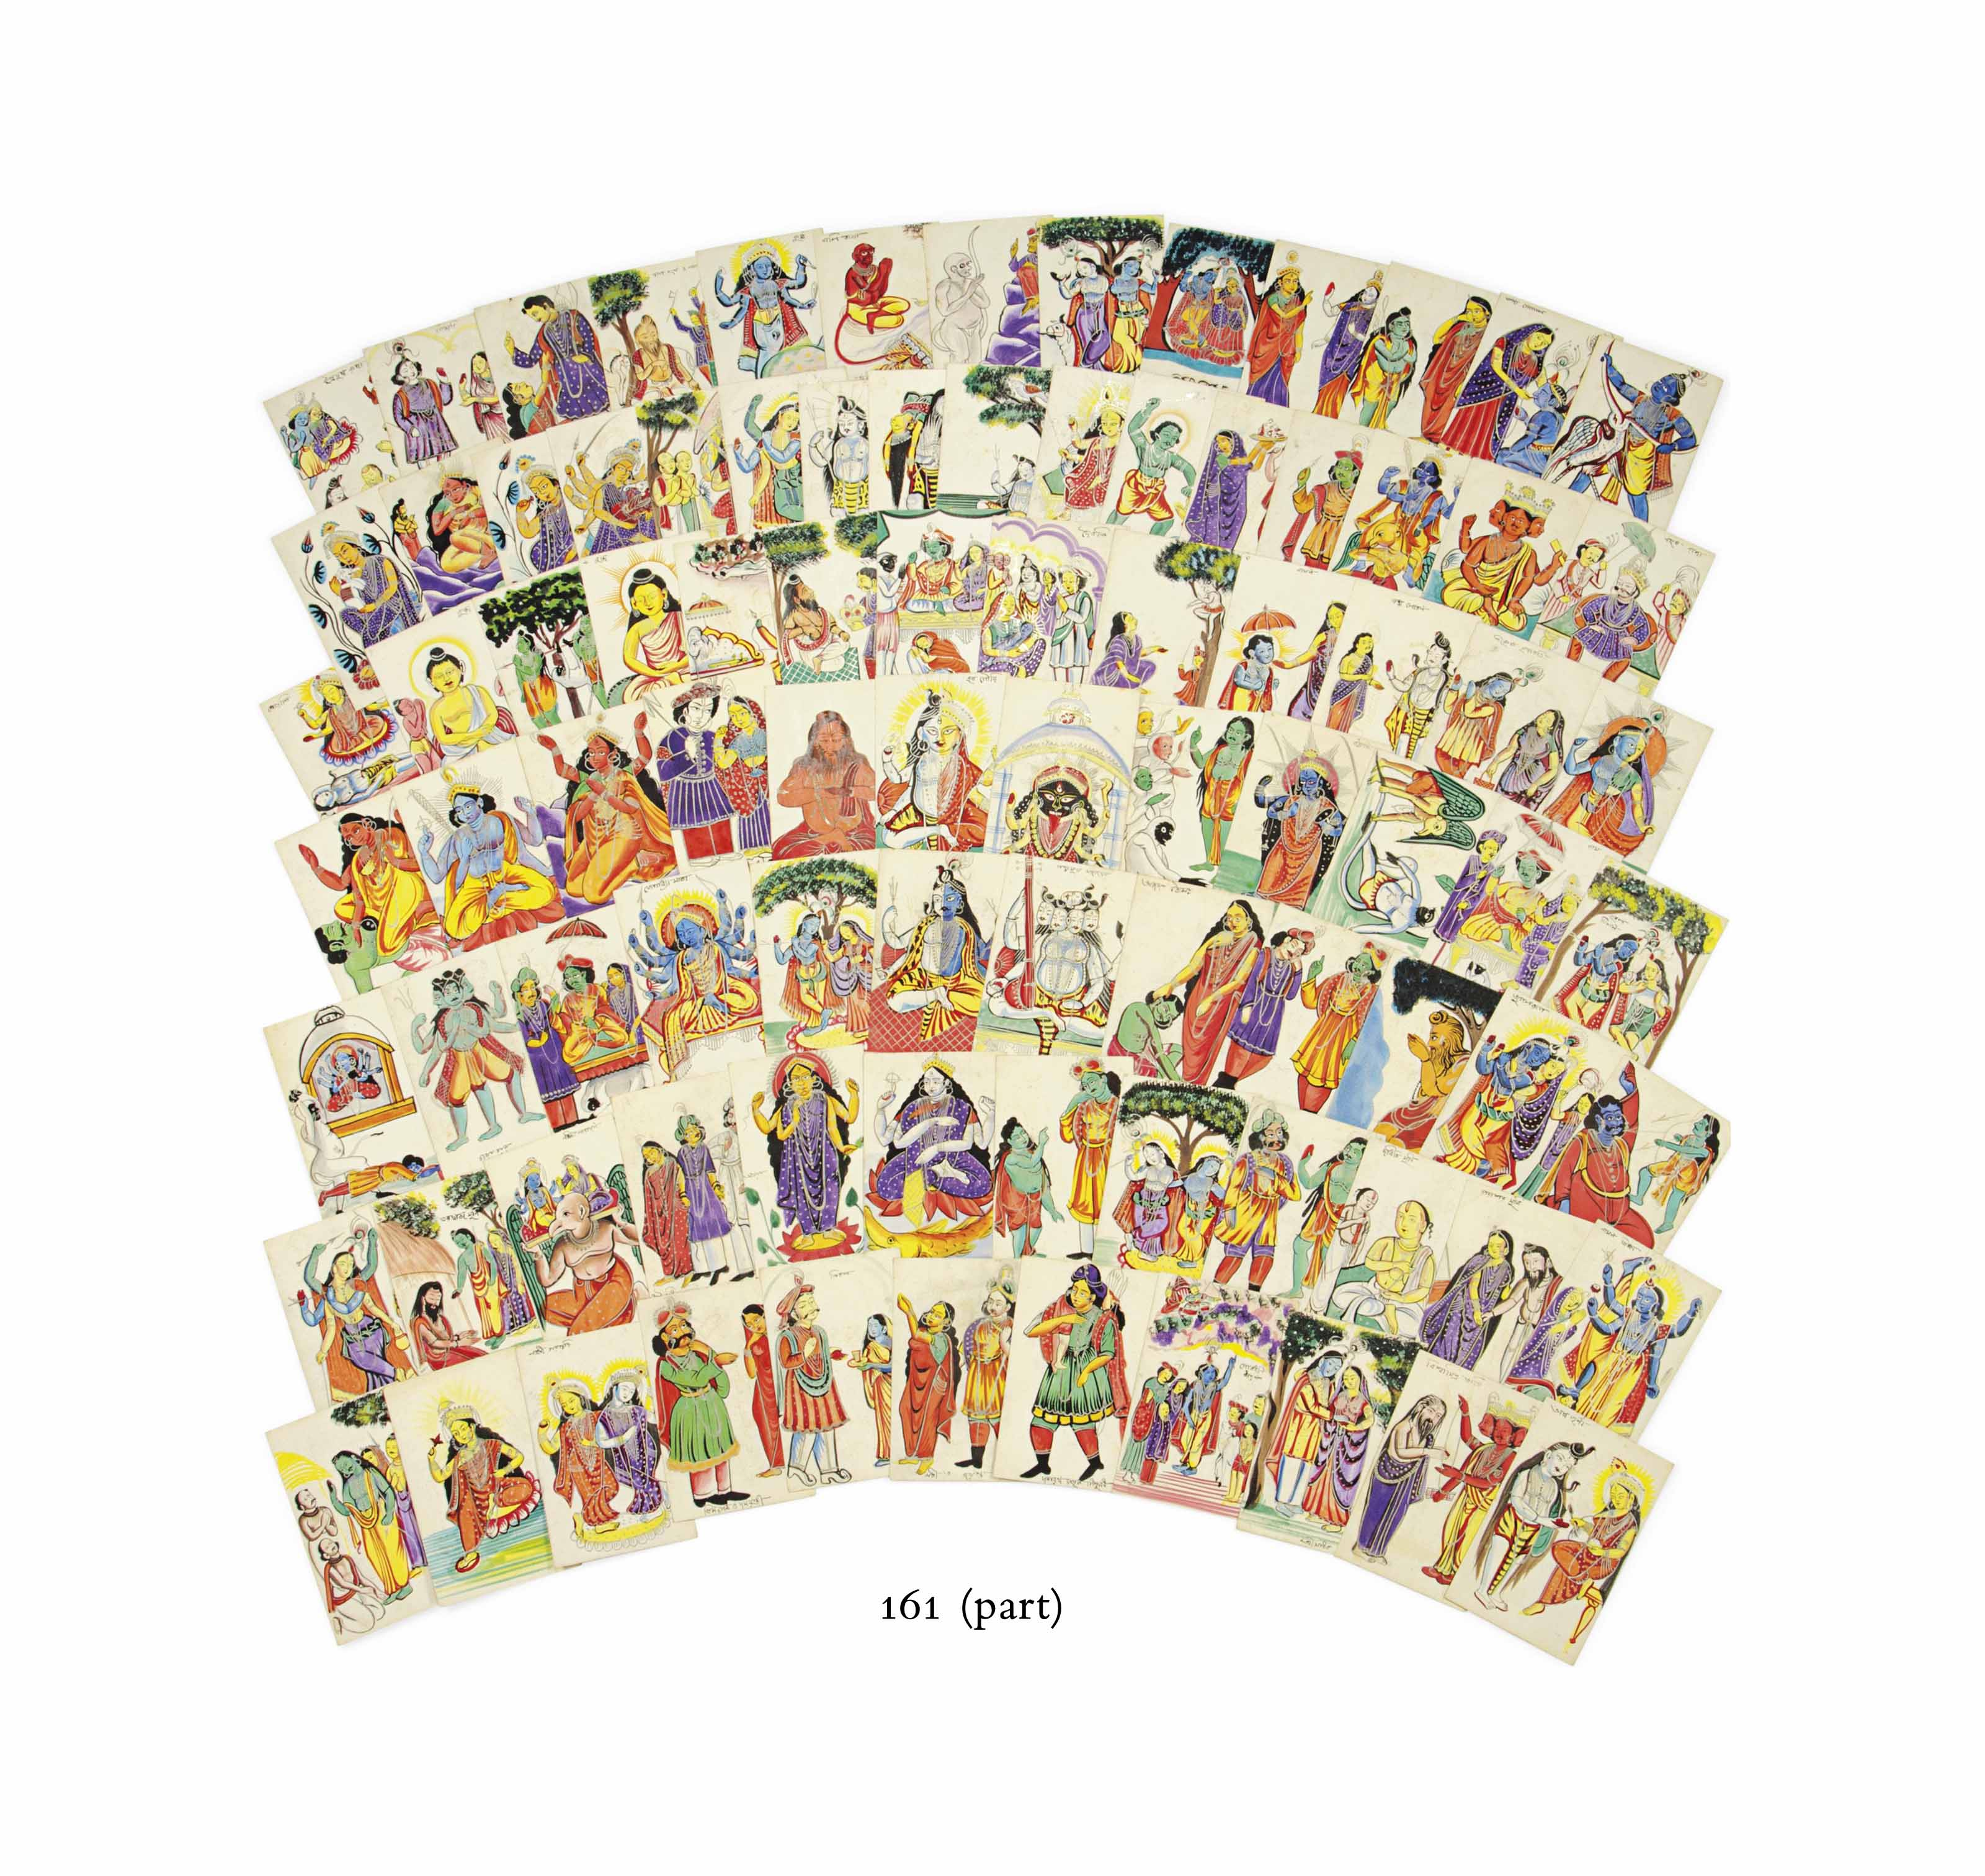 A LARGE COLLECTION OF KALIGHAT